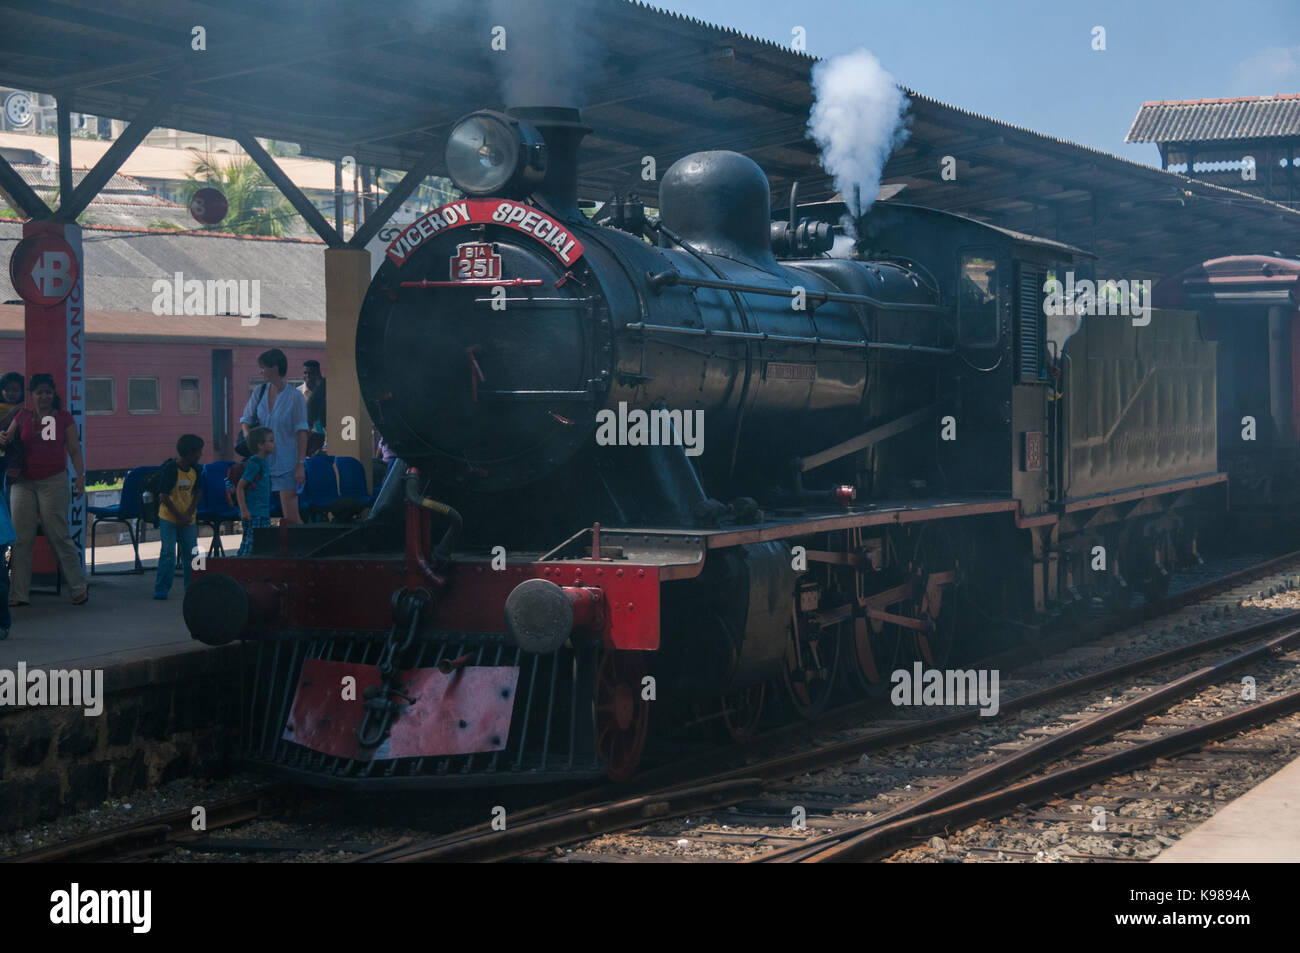 No. 251 Sir Thomas Maitland a class B1a steam locomotive being detached from the Viceroy Special at Galle Station, - Stock Image